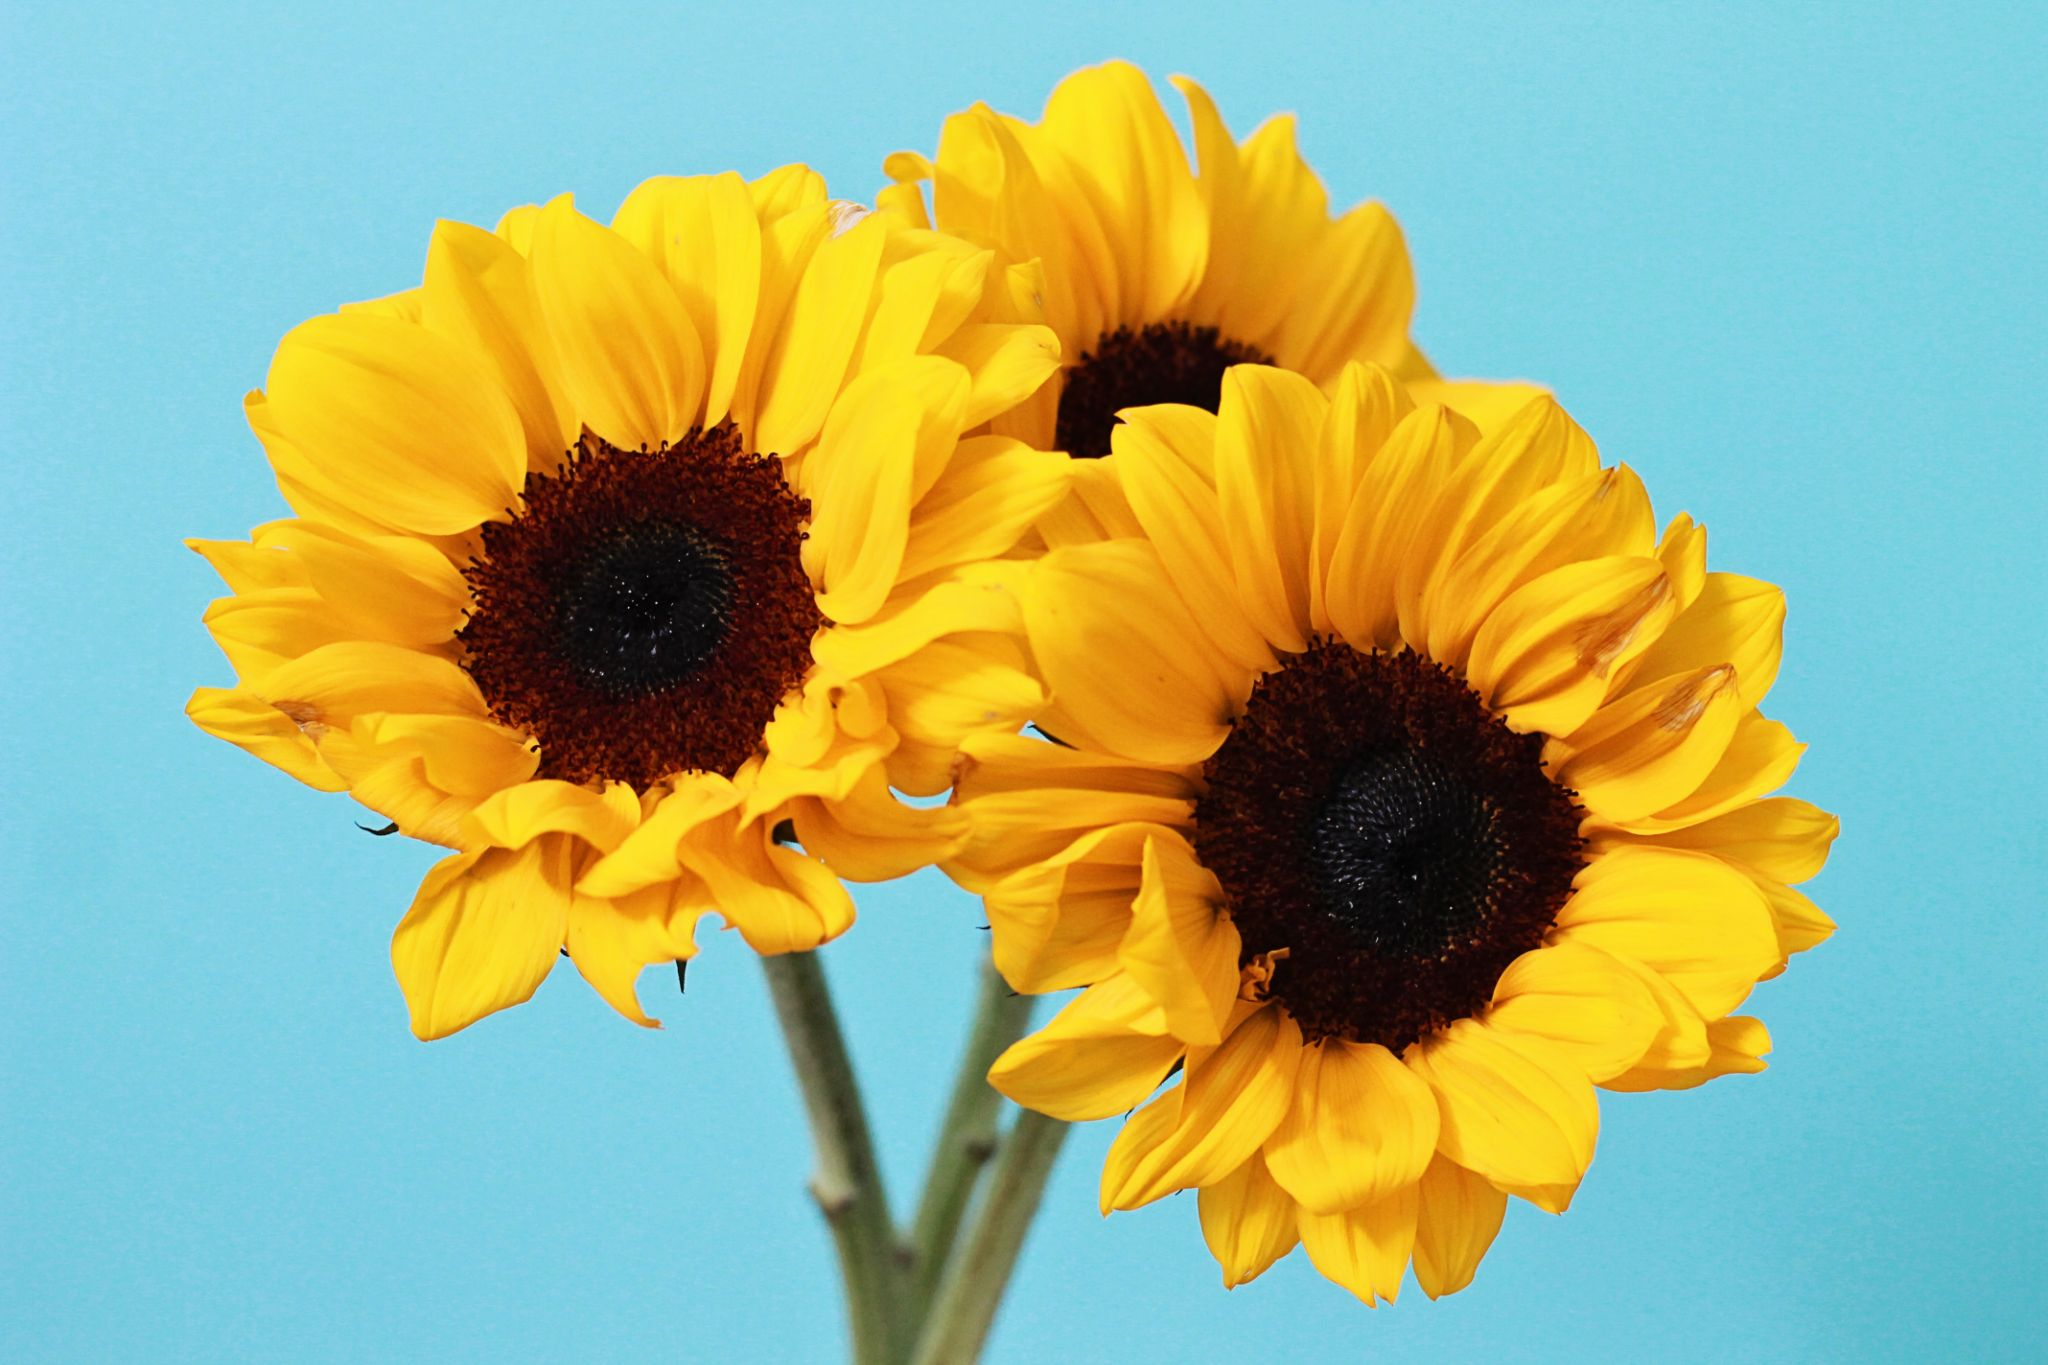 Karli Brooke Photography - Sunflowers by karlibrookephotography